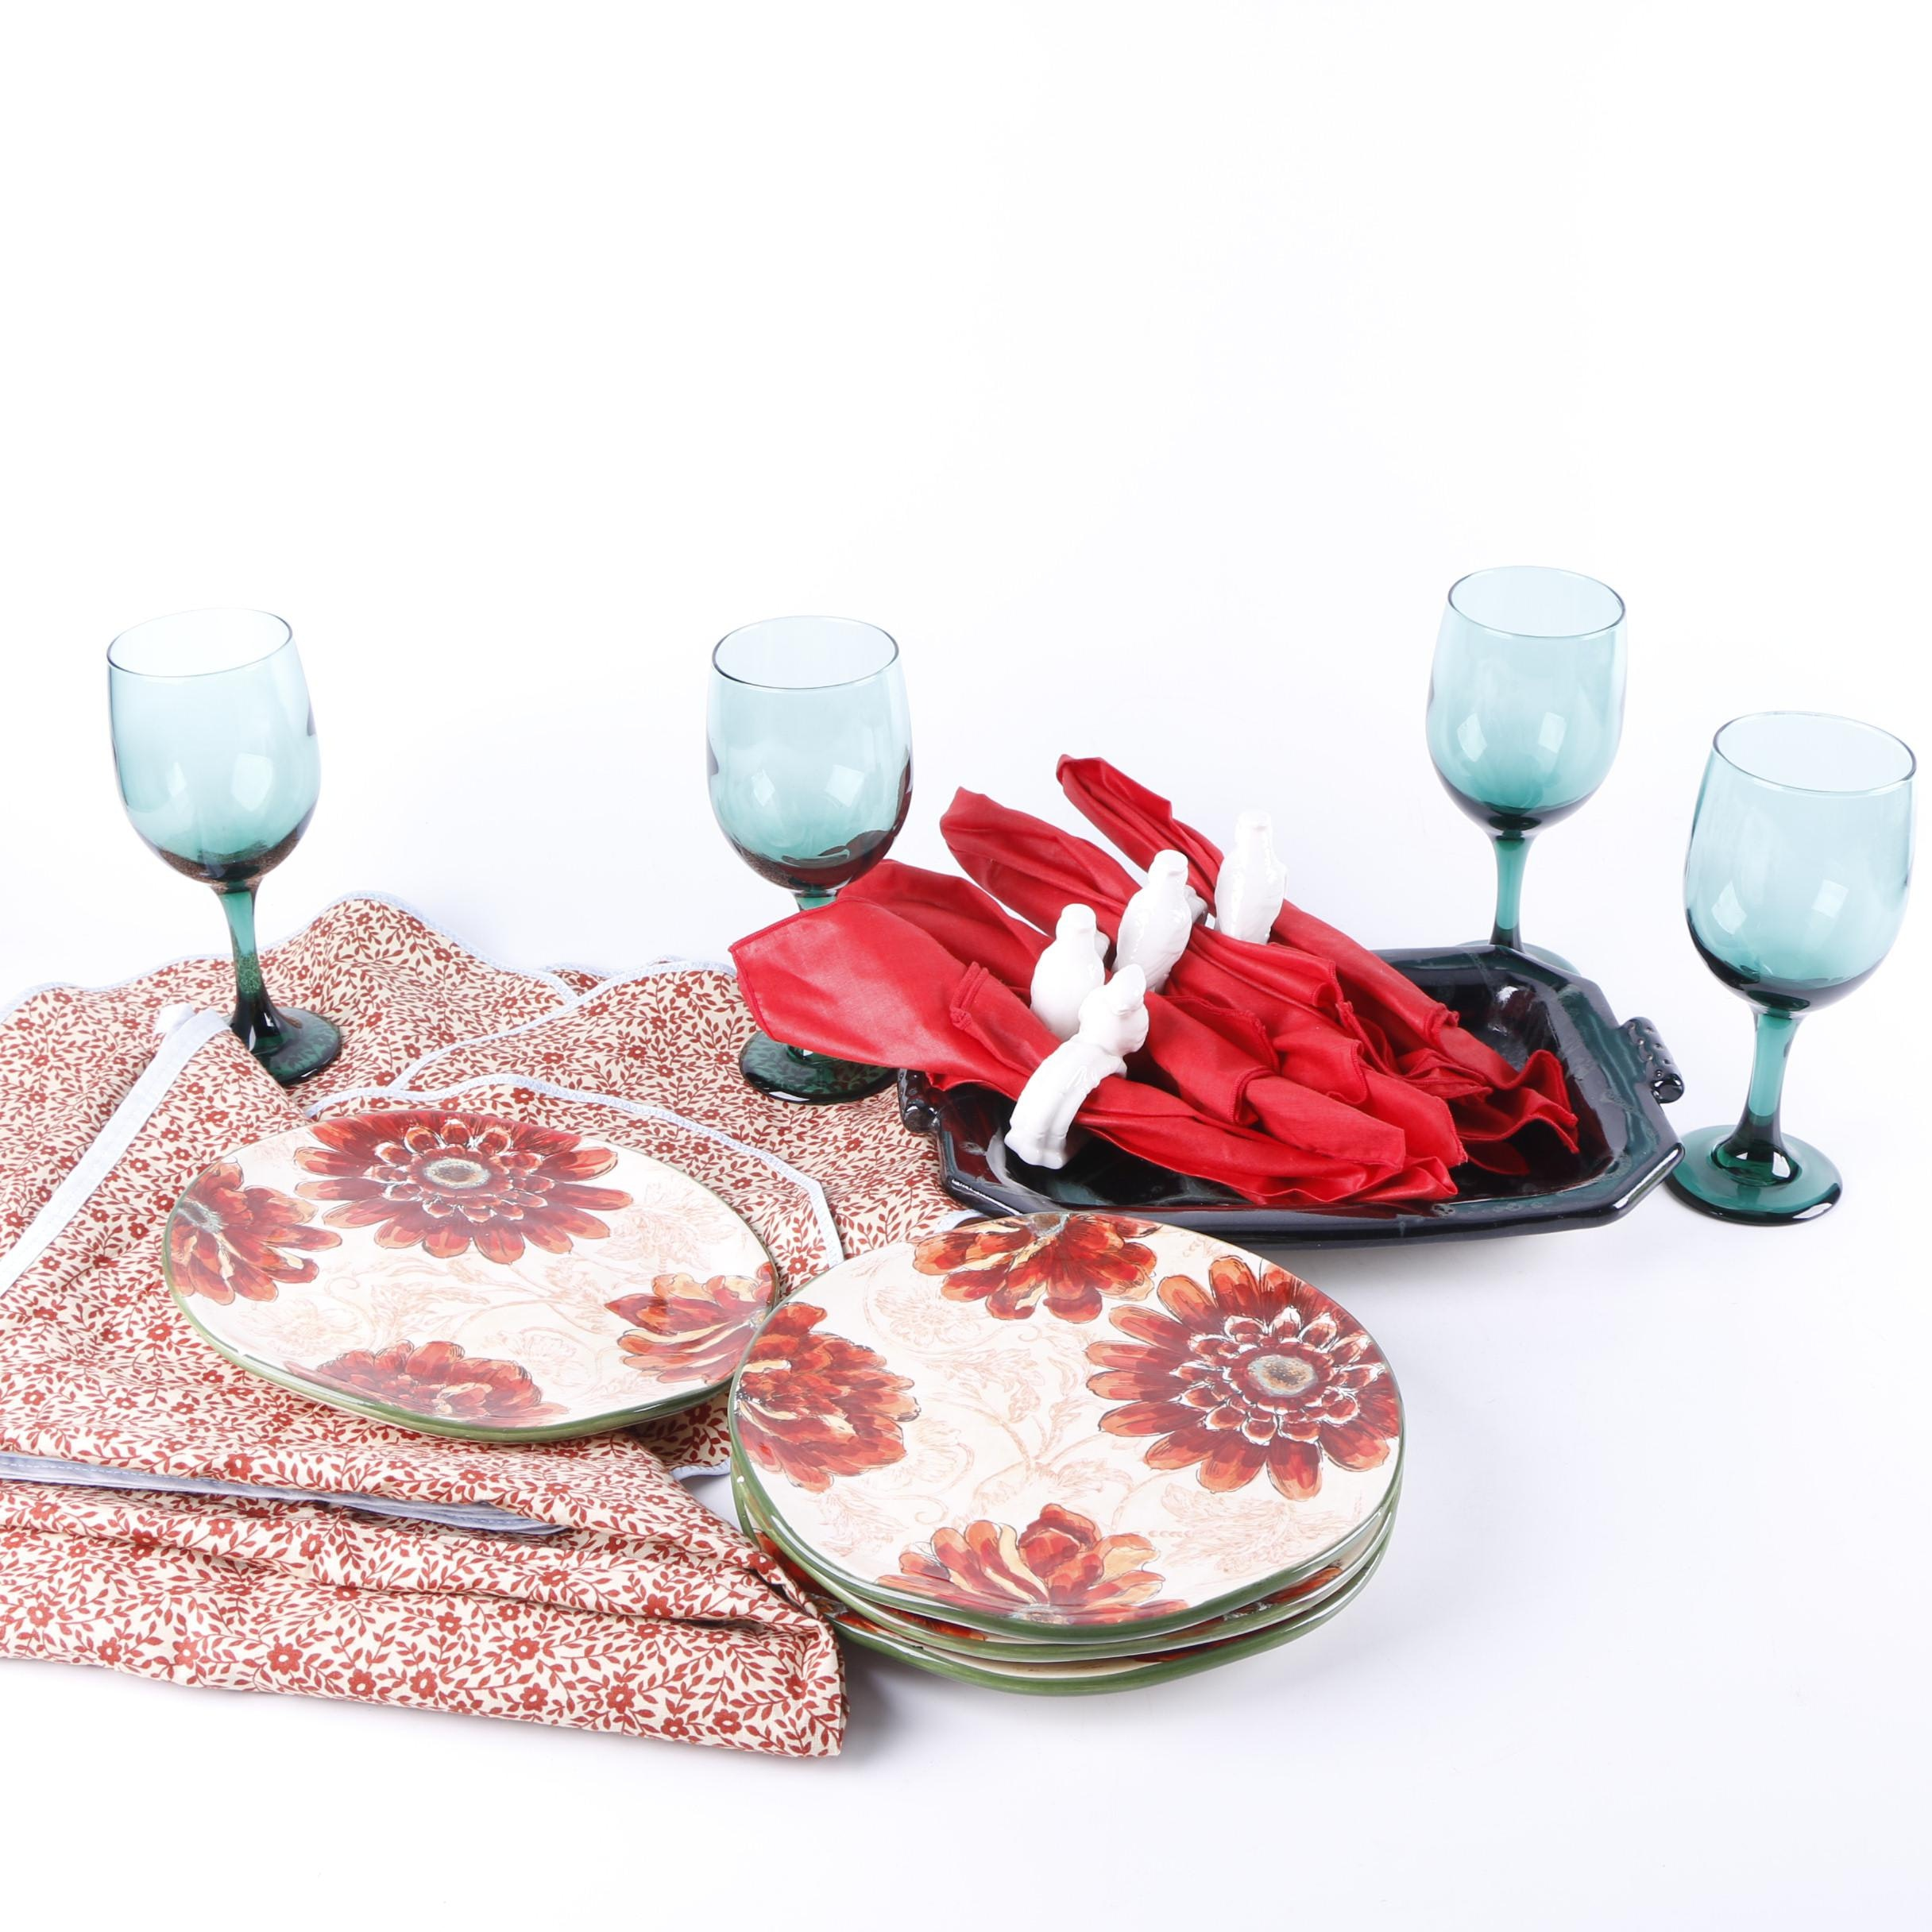 Red Floral Luncheon Set for Four with Handmade Studio Pottery Platter